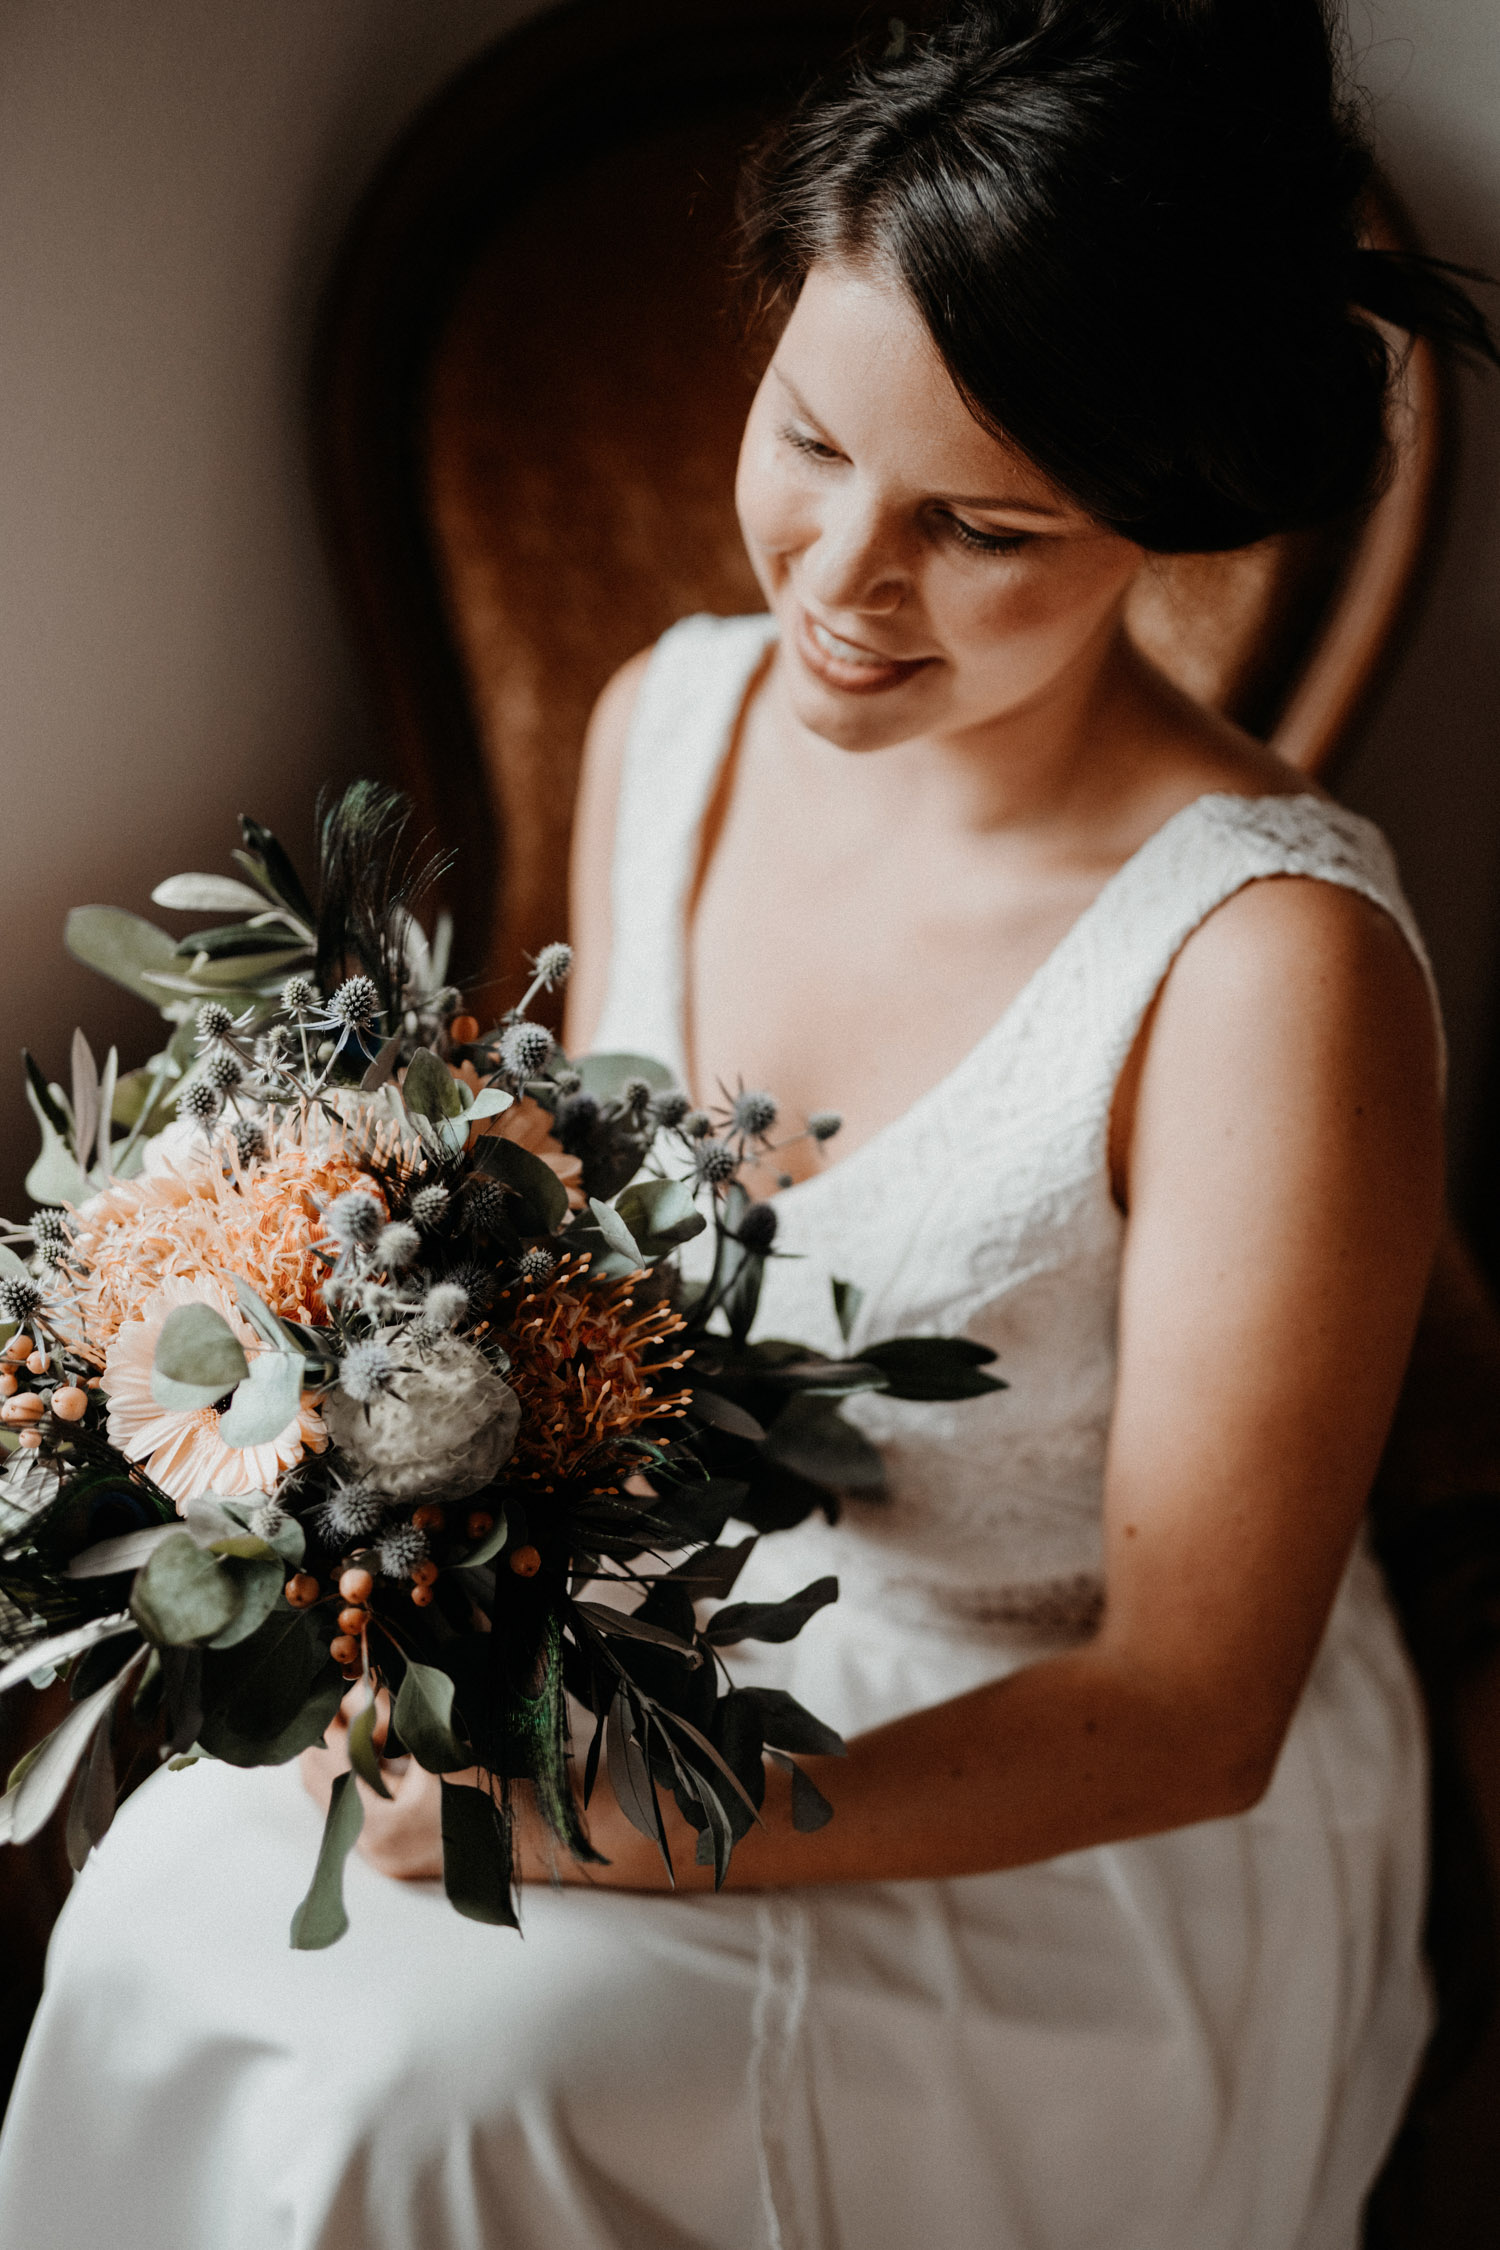 Vintage Industrial Bohemian Wedding in Switzerland wedding photographer elopement photographer getting ready bride portrait